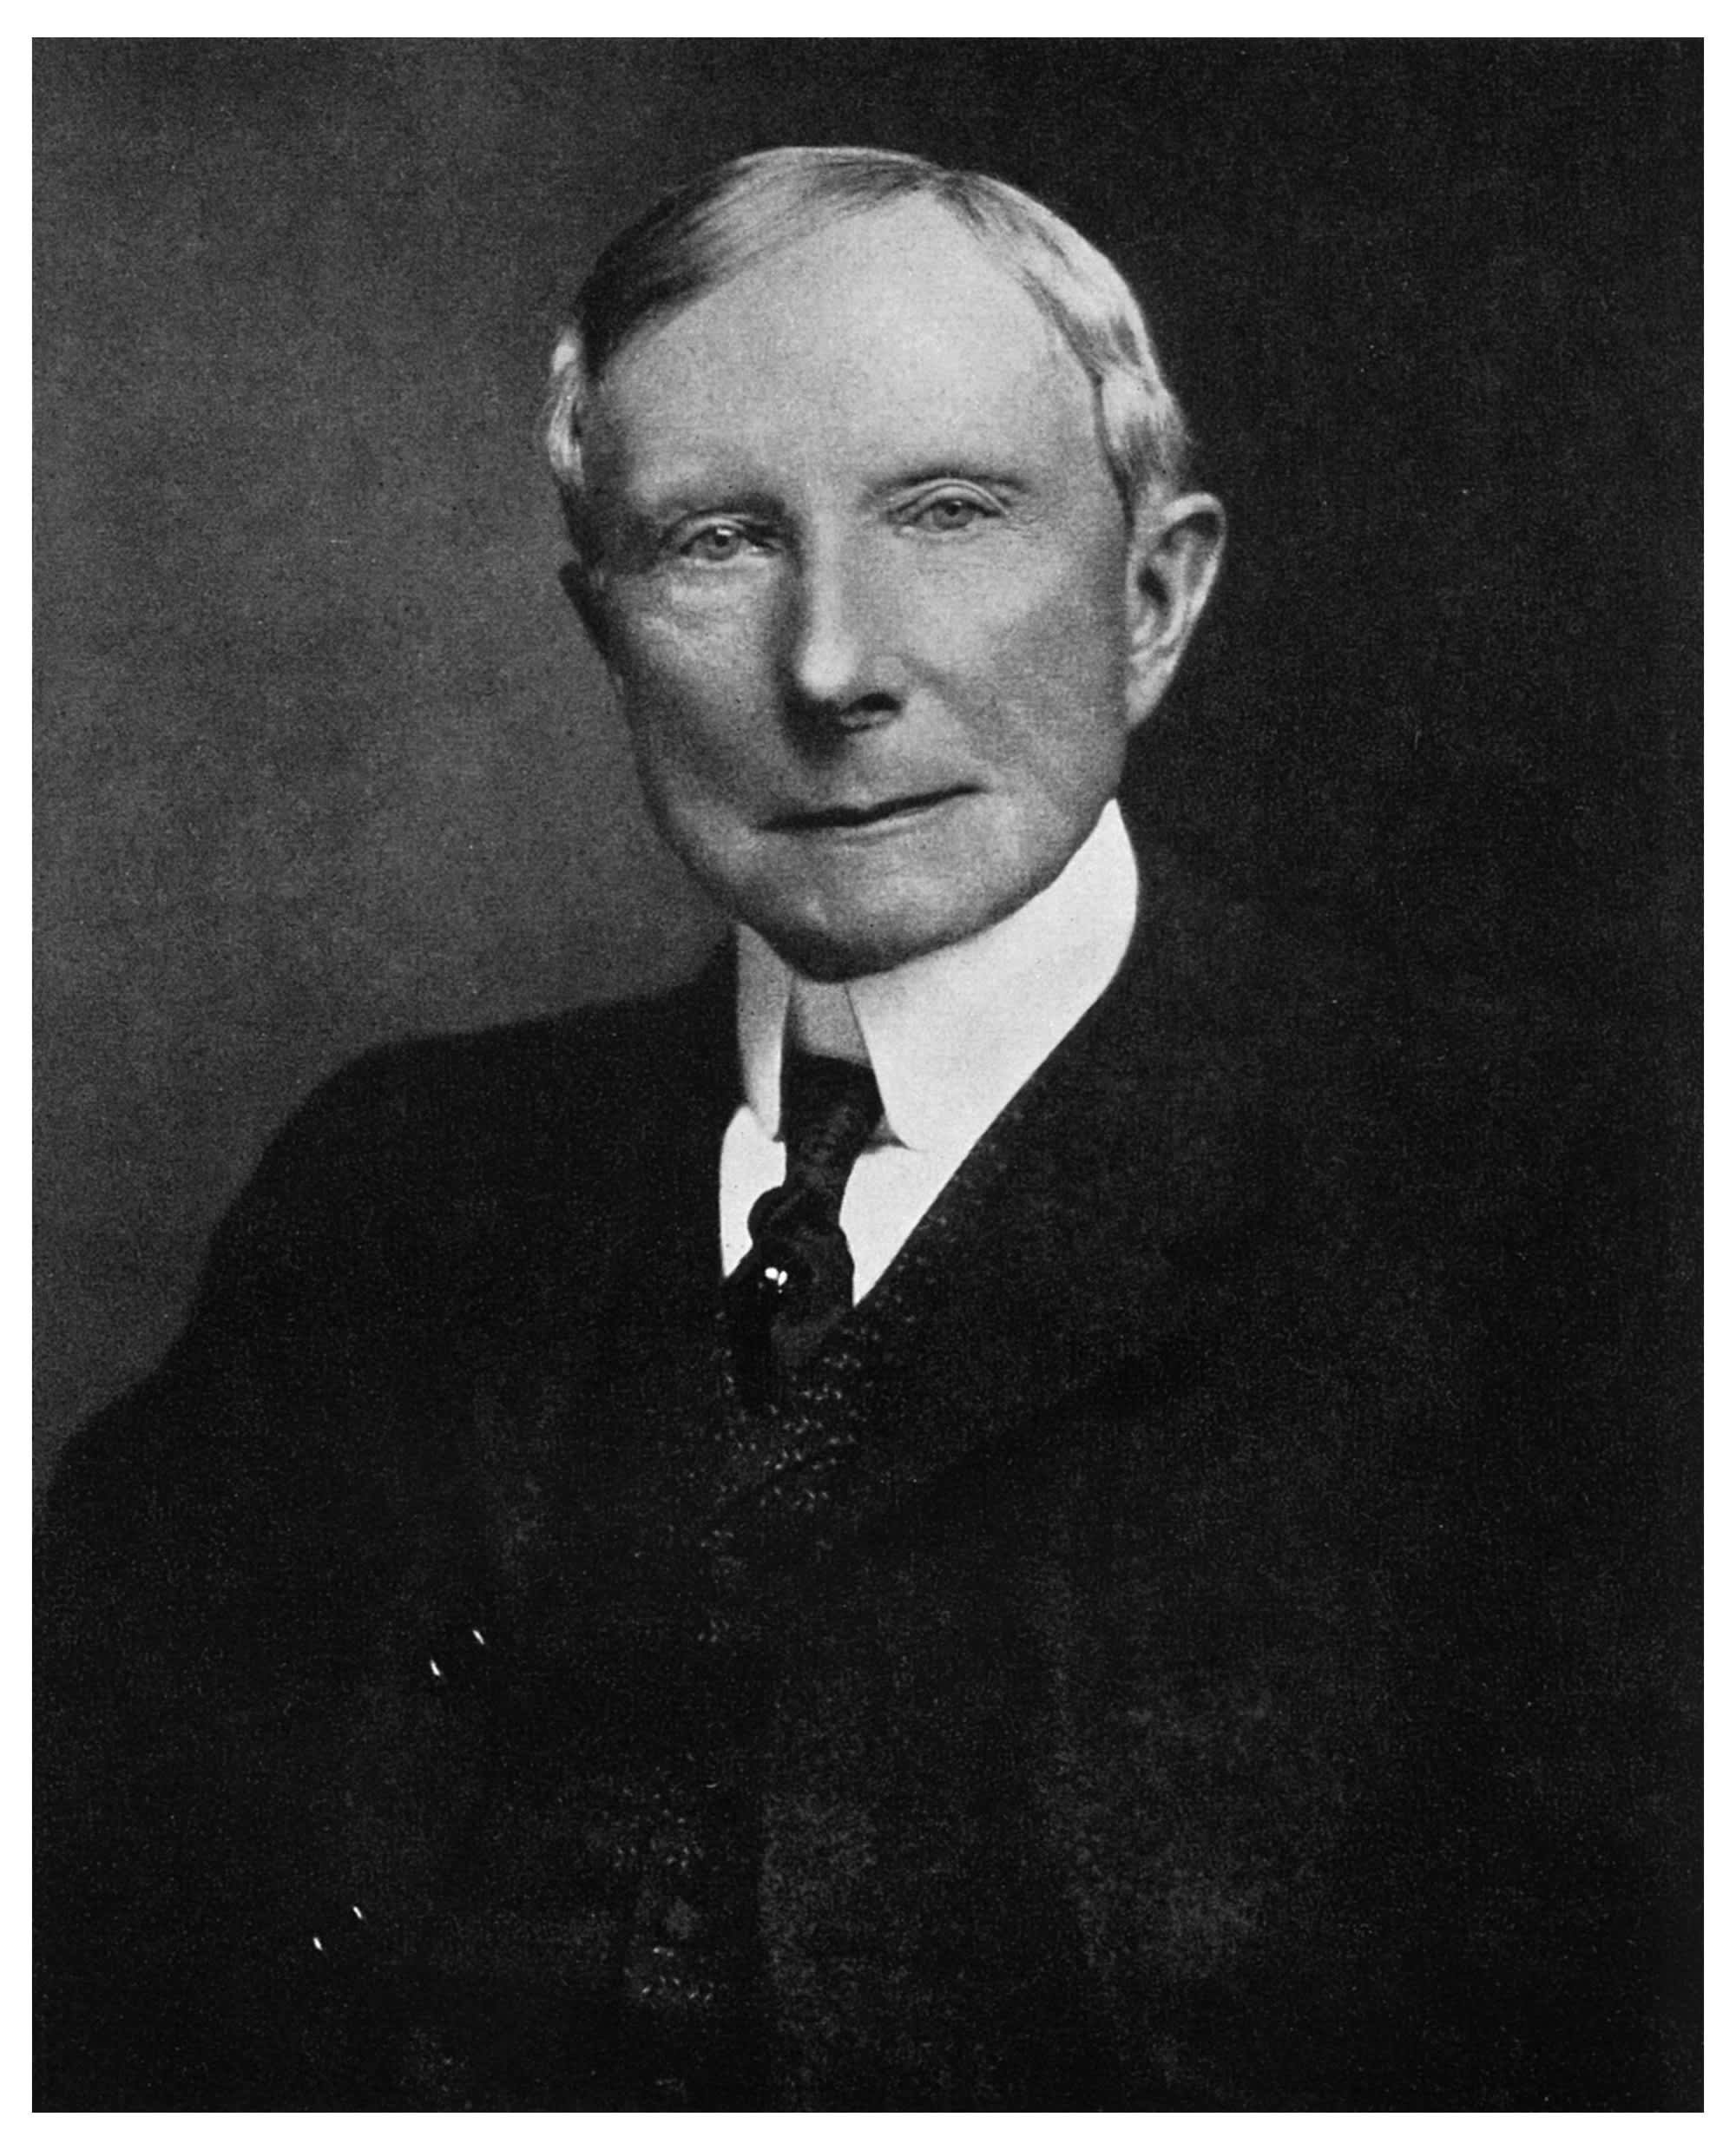 john d rockefeller a life from beginning to end english edition